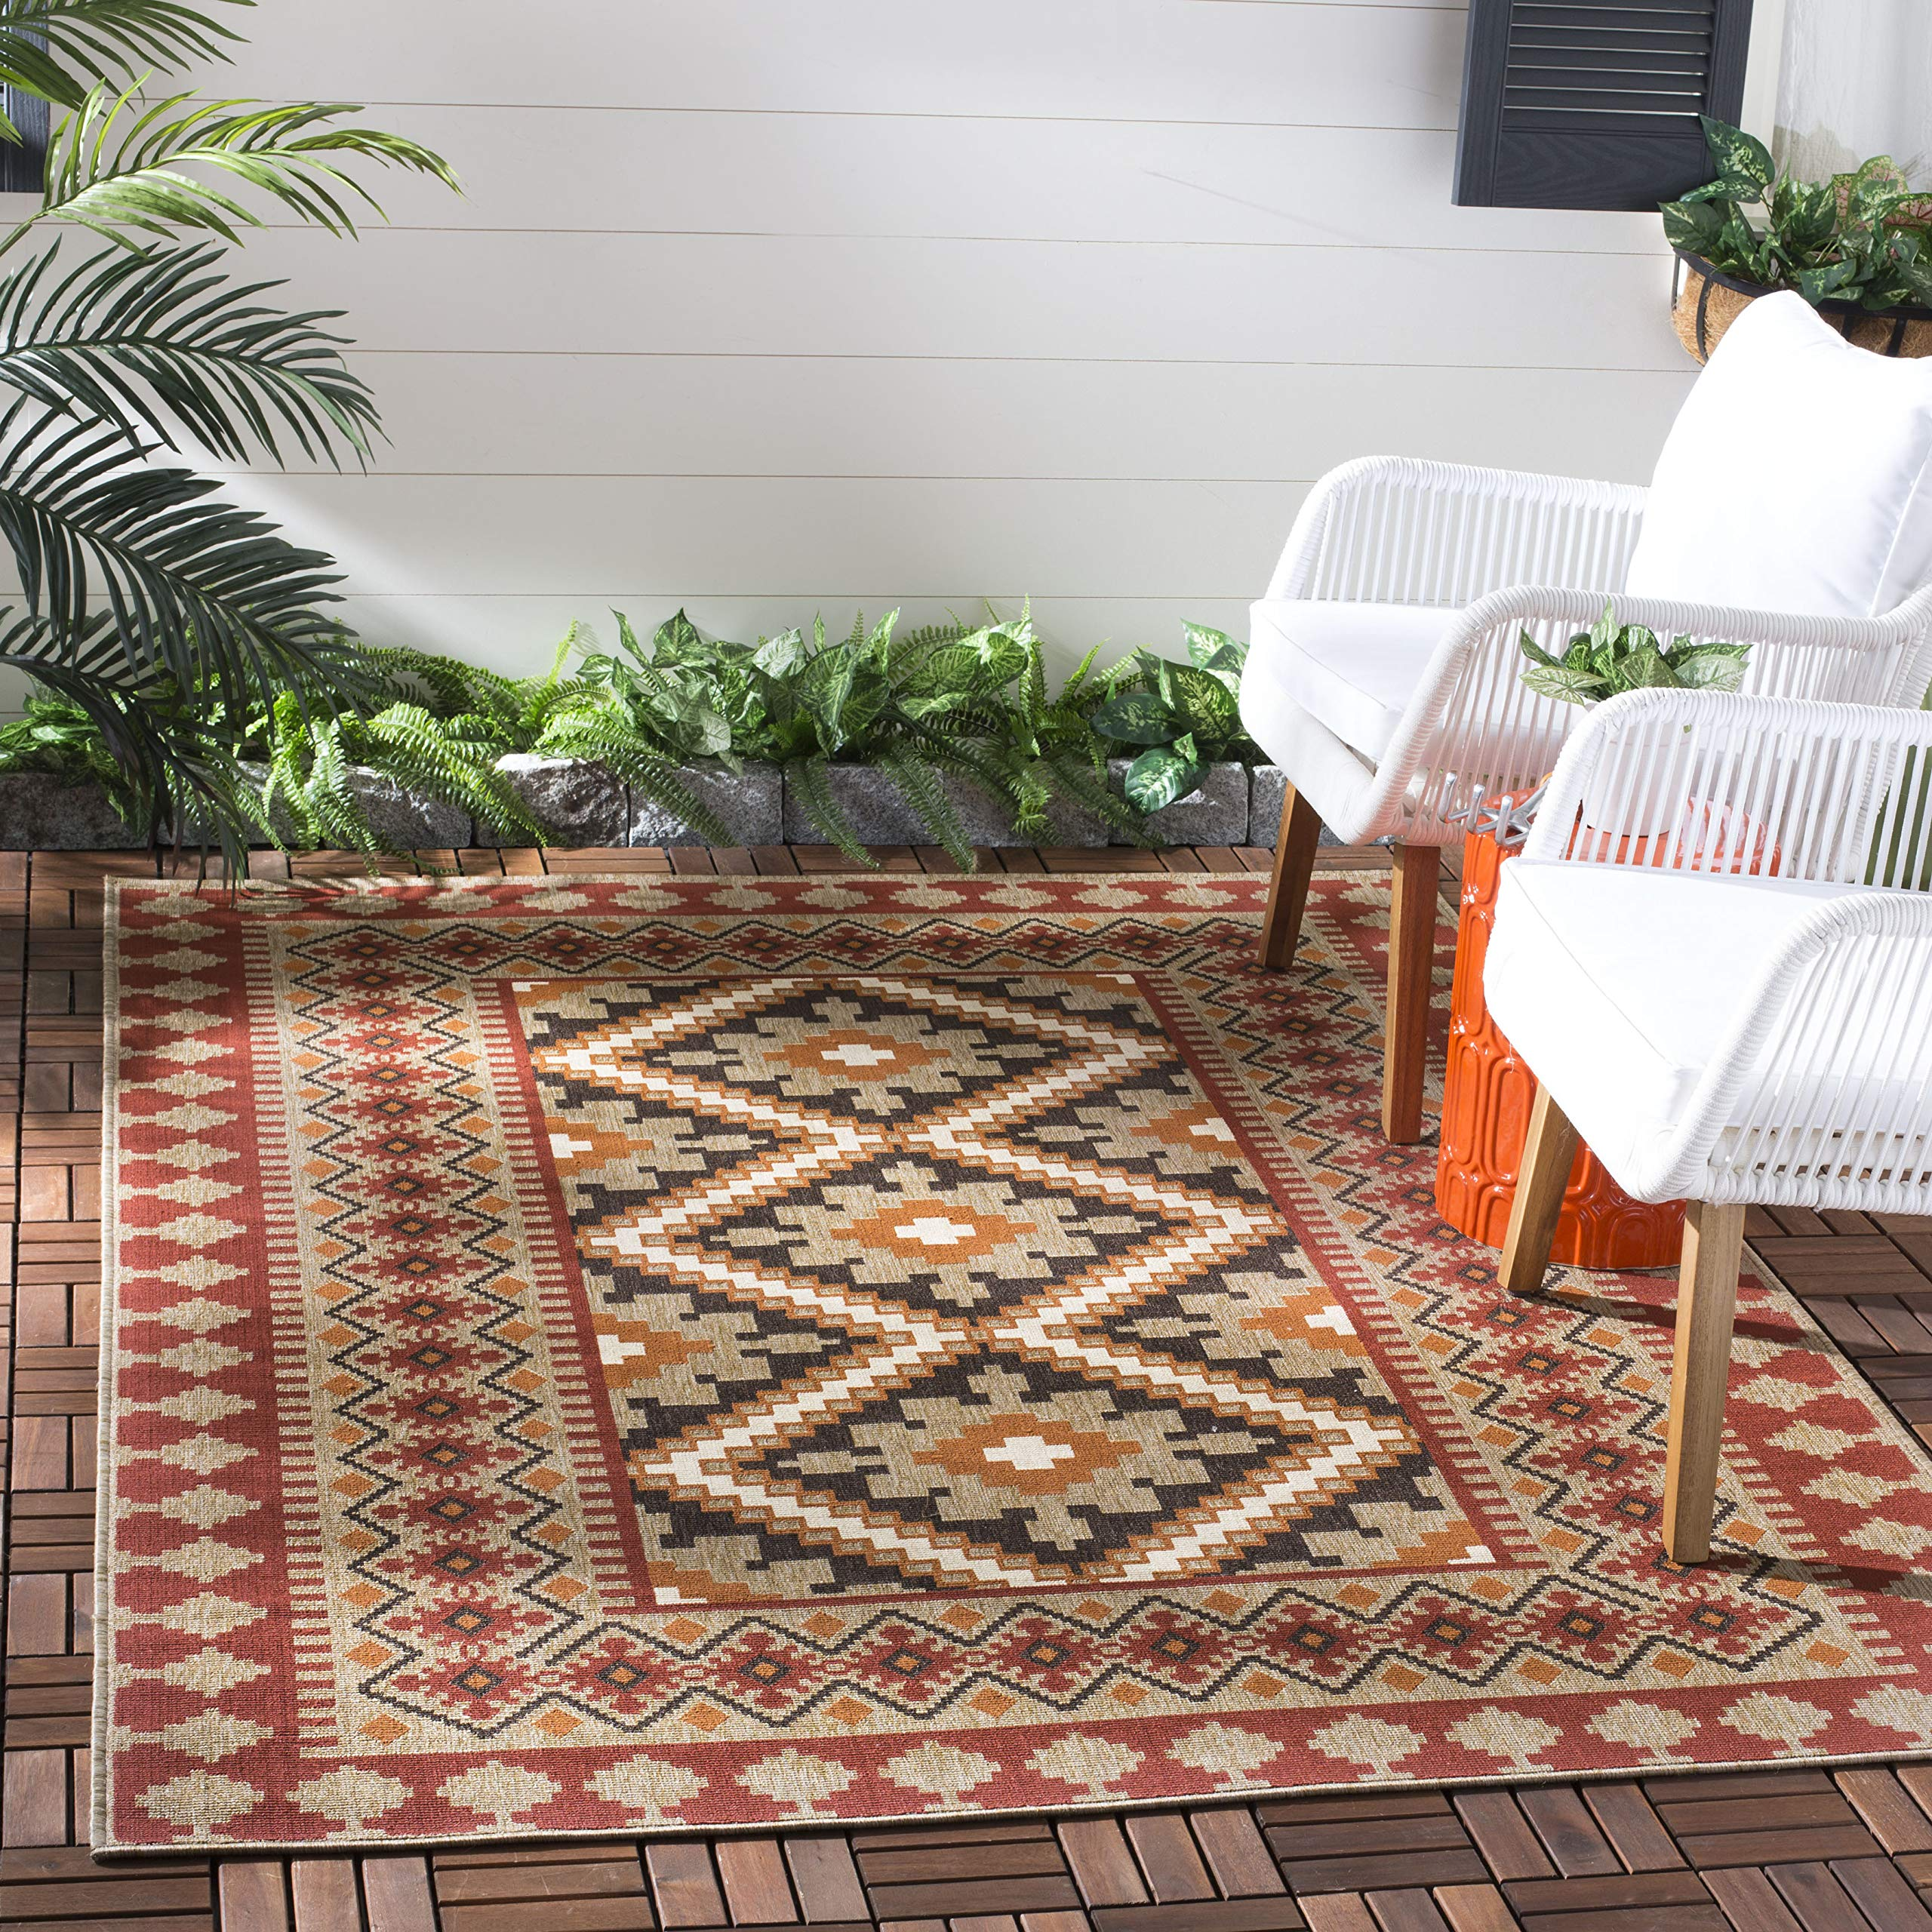 Safavieh Veranda Collection VER099-0334 Indoor/ Outdoor Red and Natural Southwestern Area Rug (8' x 11'2'') by Safavieh